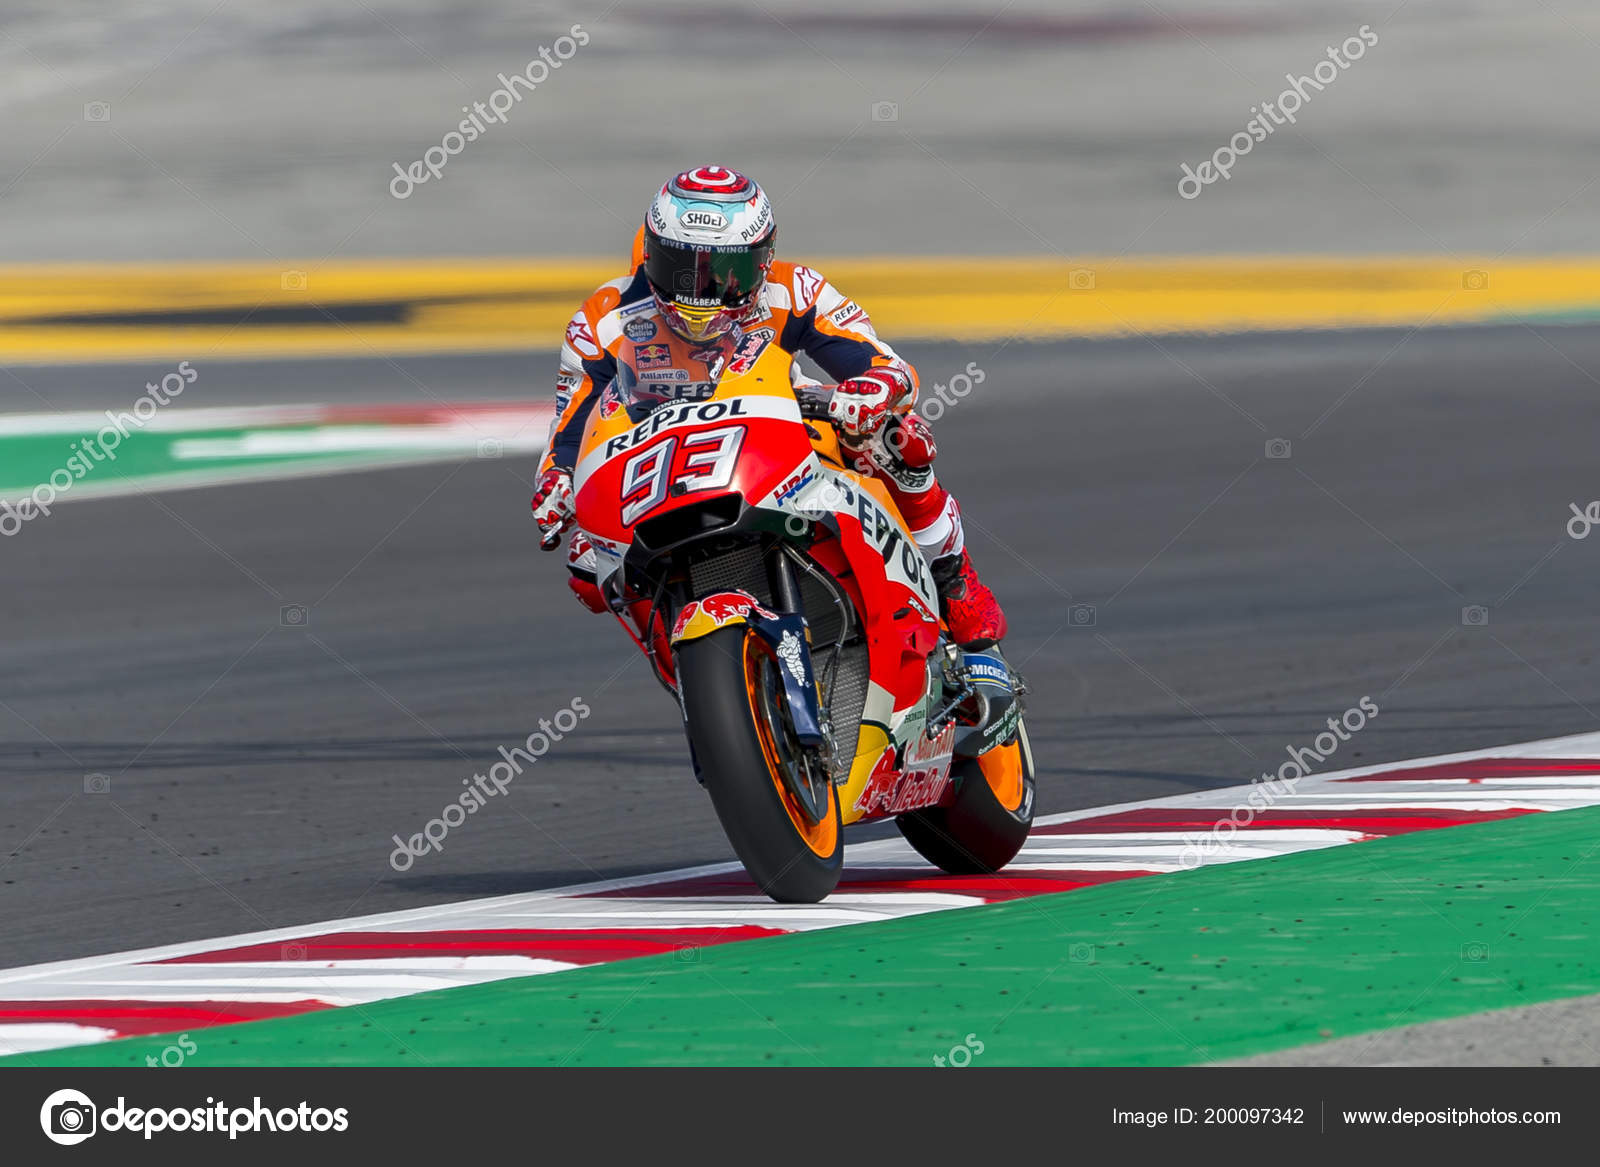 Driver Marc Marquez Monster Energy Grand Prix Catalonia Motogp